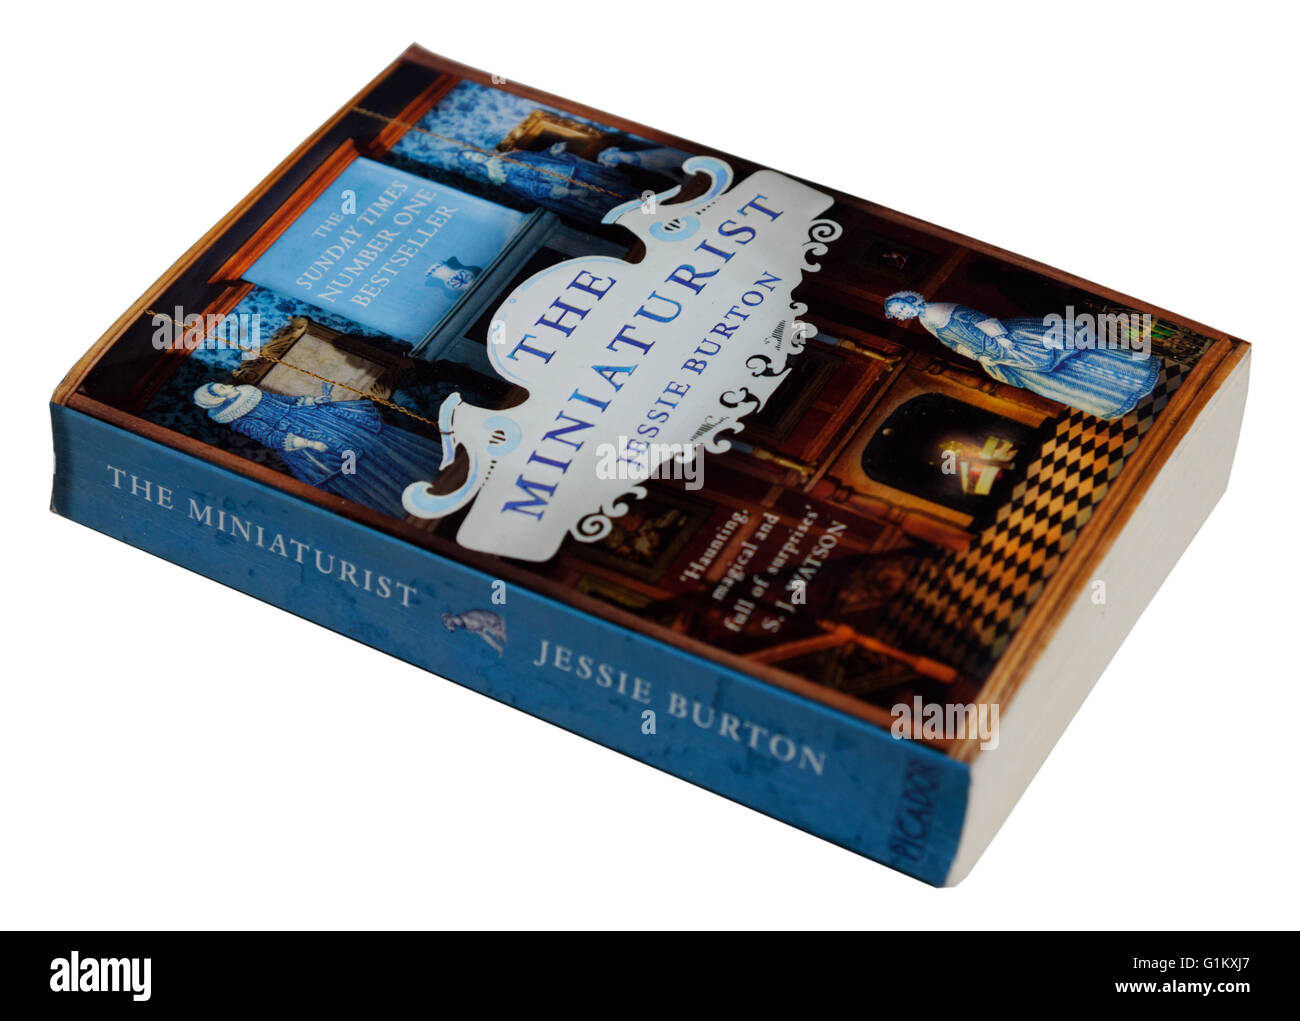 The Miniaturist by Jessie Burton - Stock Image